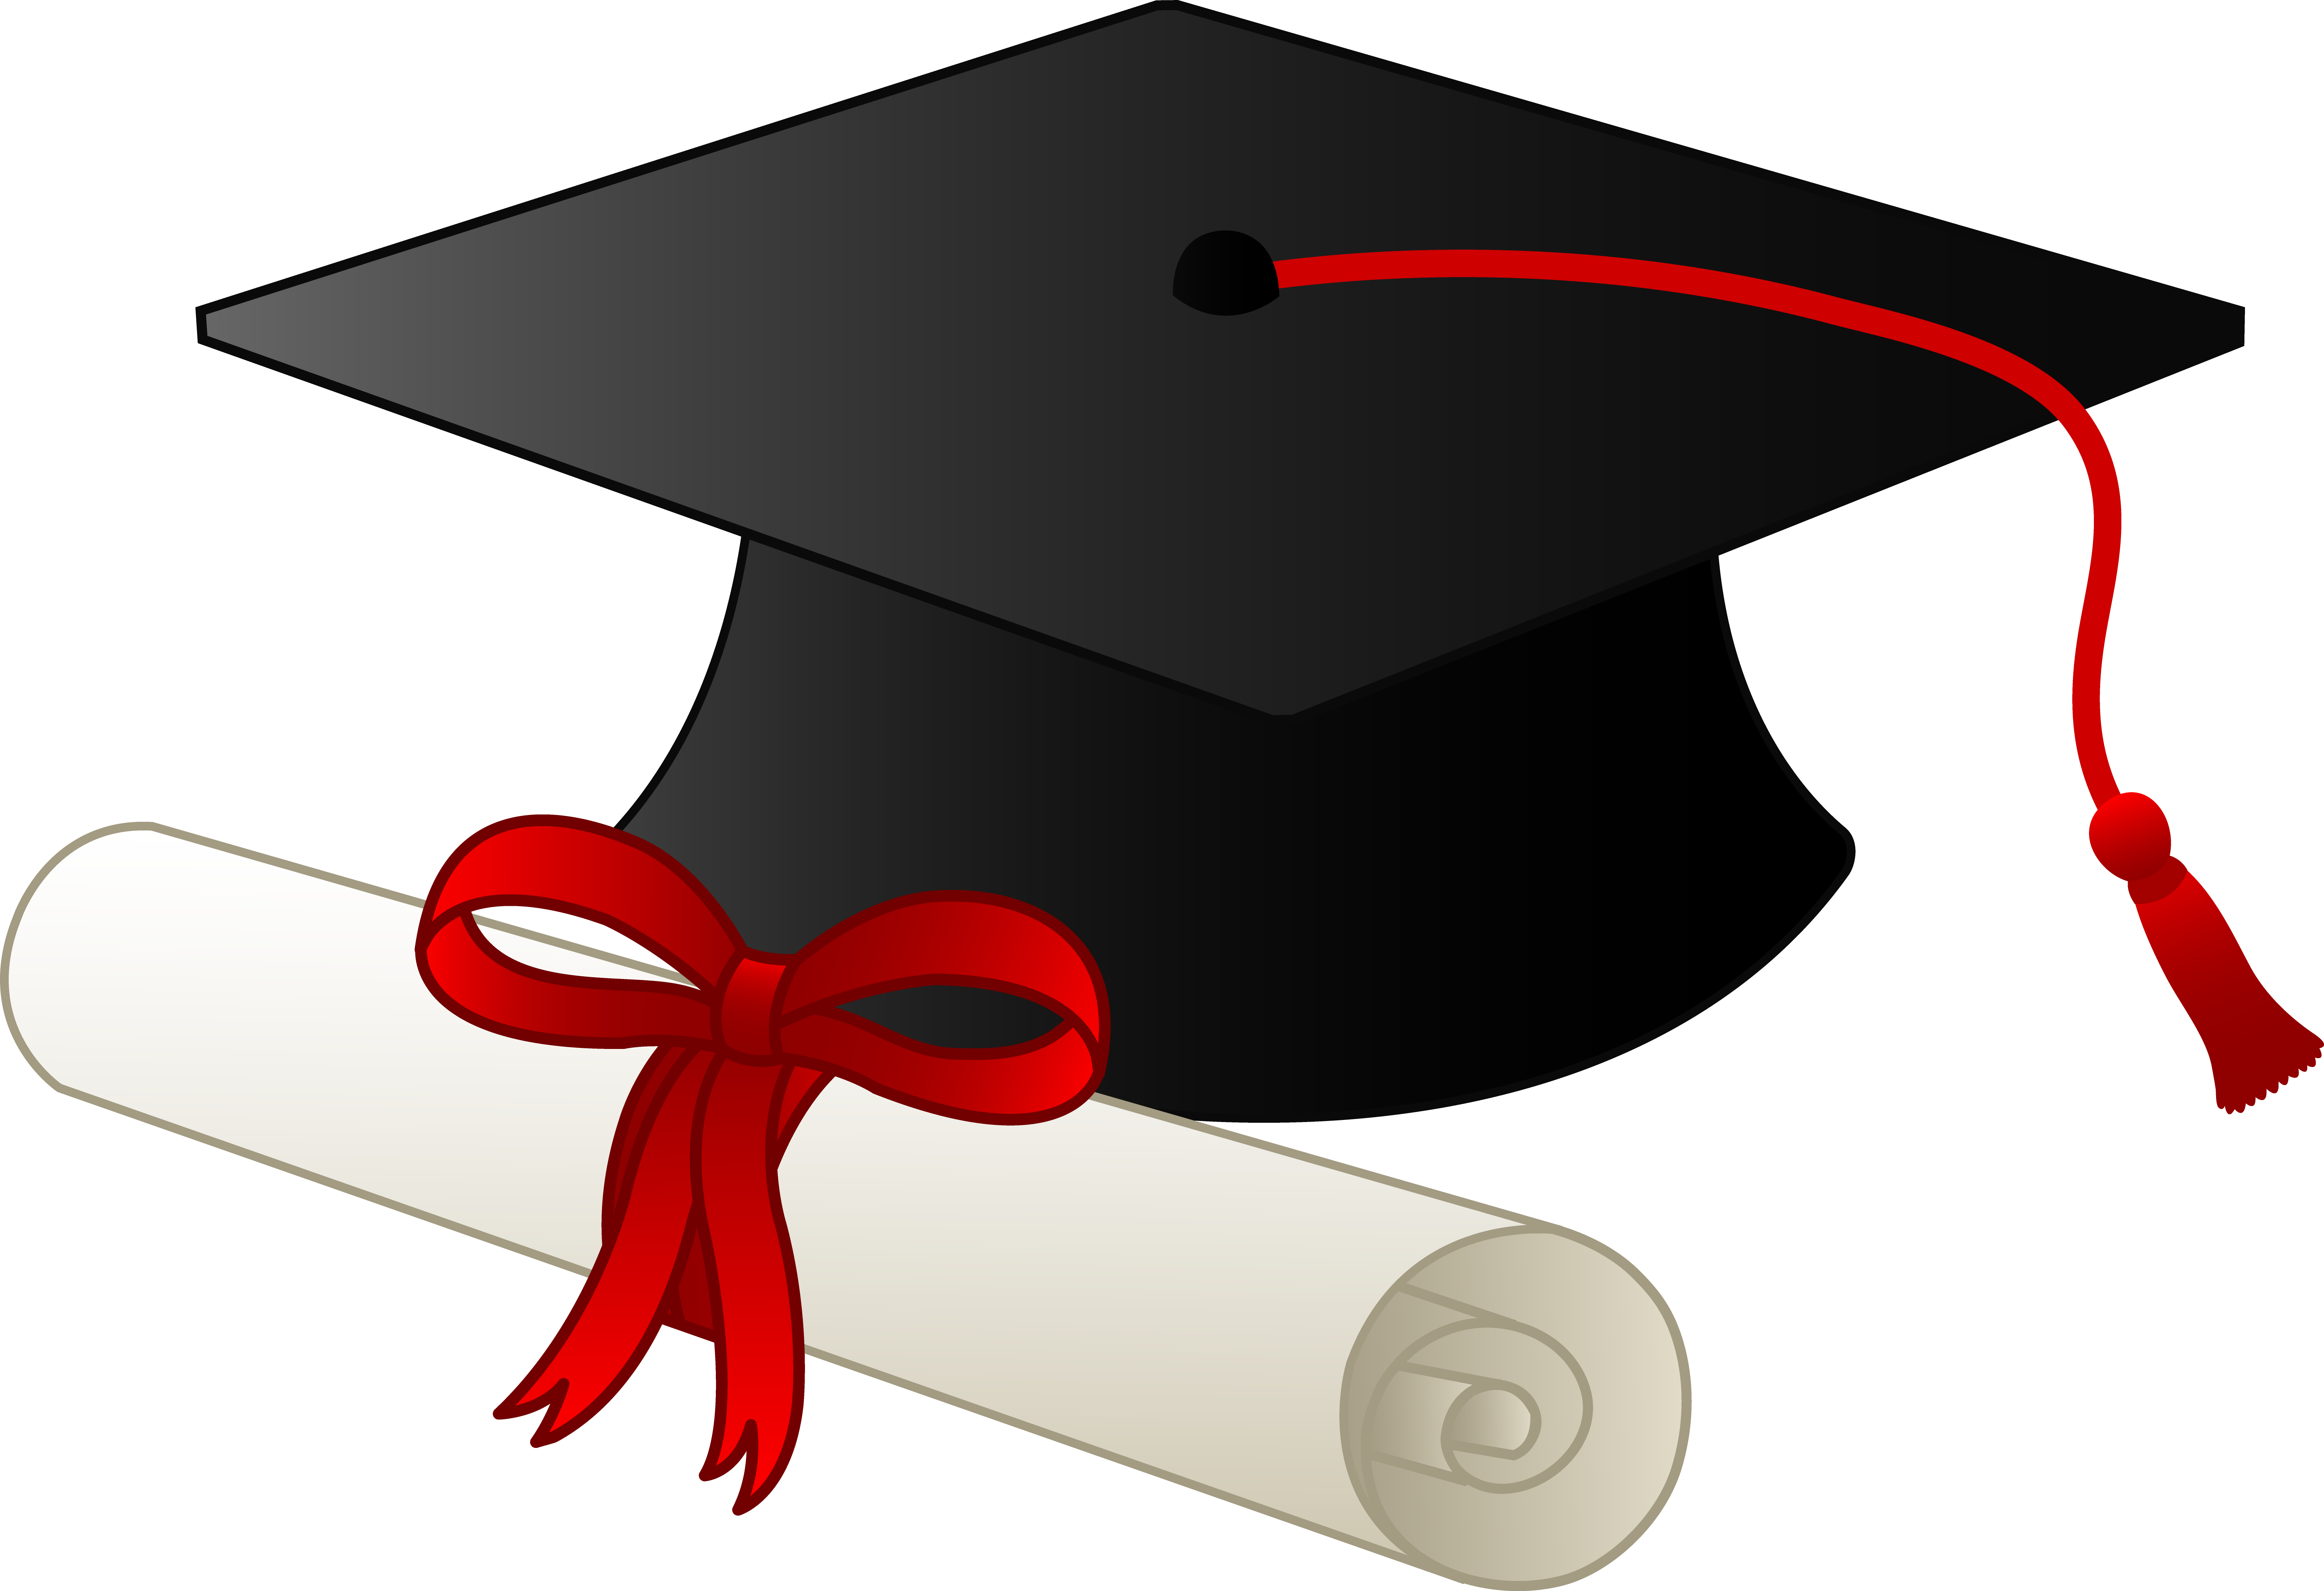 Graduation 2016 clipart image transparent library graduation 2016 clipart #208 | Printables | Graduation 2016 ... image transparent library